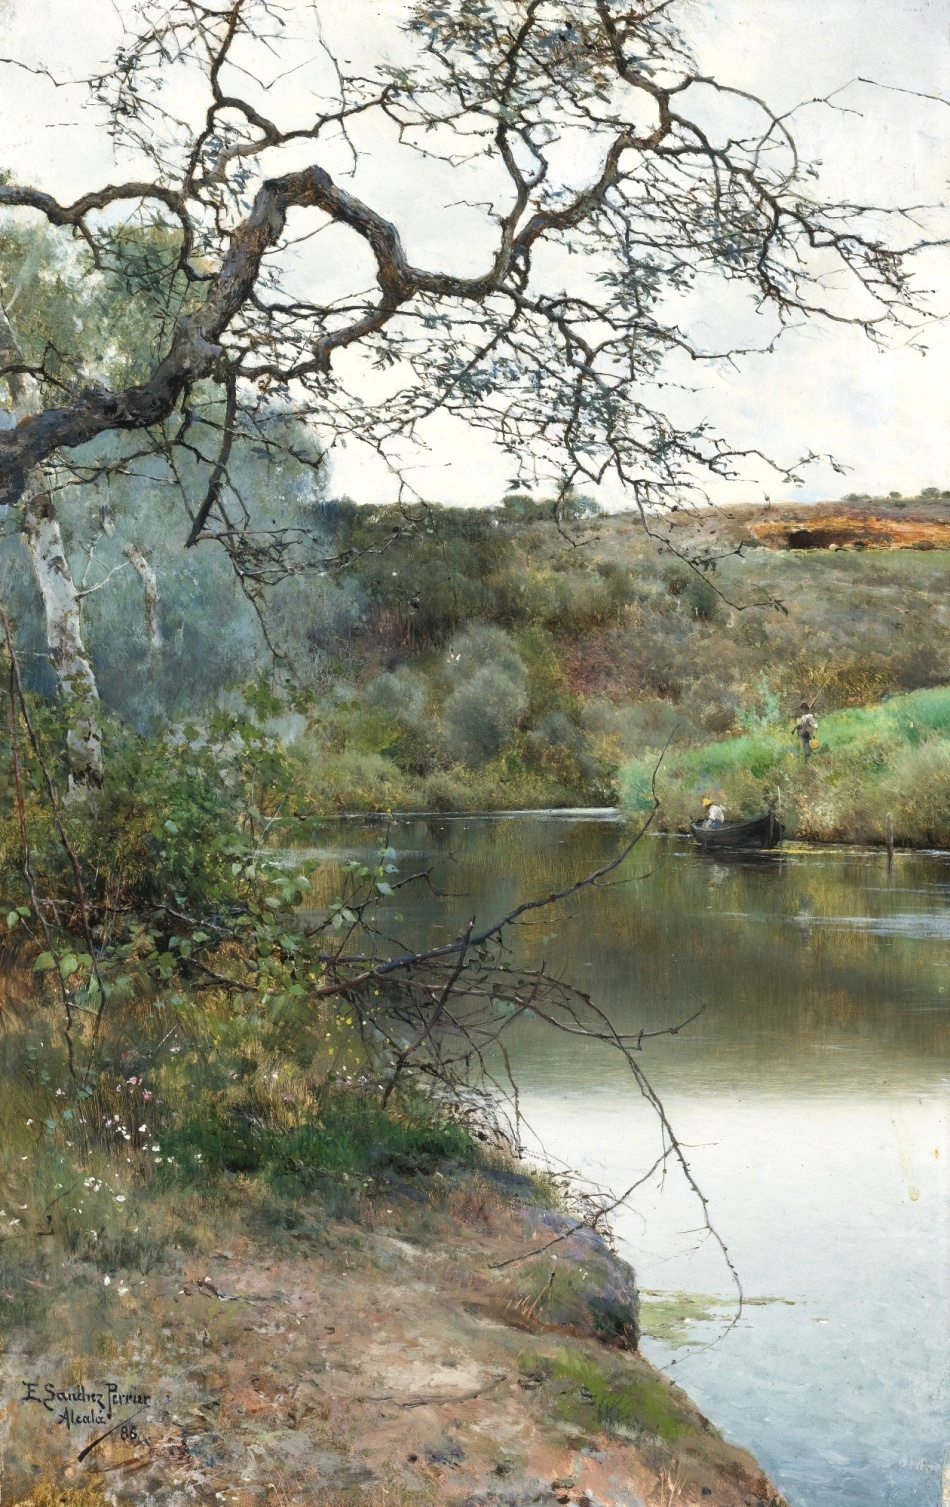 Emilio Sánchez Perrier – private collection. Title: Boating Along a Quiet River. Acalà. Date: 1886. Materials: oil on panel. Dimensions: 35.2 x 22.2 cm. Inscriptions: E. Sanchez Perrier. Acalà/86 (lower left). Source: http://www.sothebys.com/content/dam/stb/lots/N09/N09034/092N09034_74T7Y.jpg. I have changed the light and contrast of the original photo.